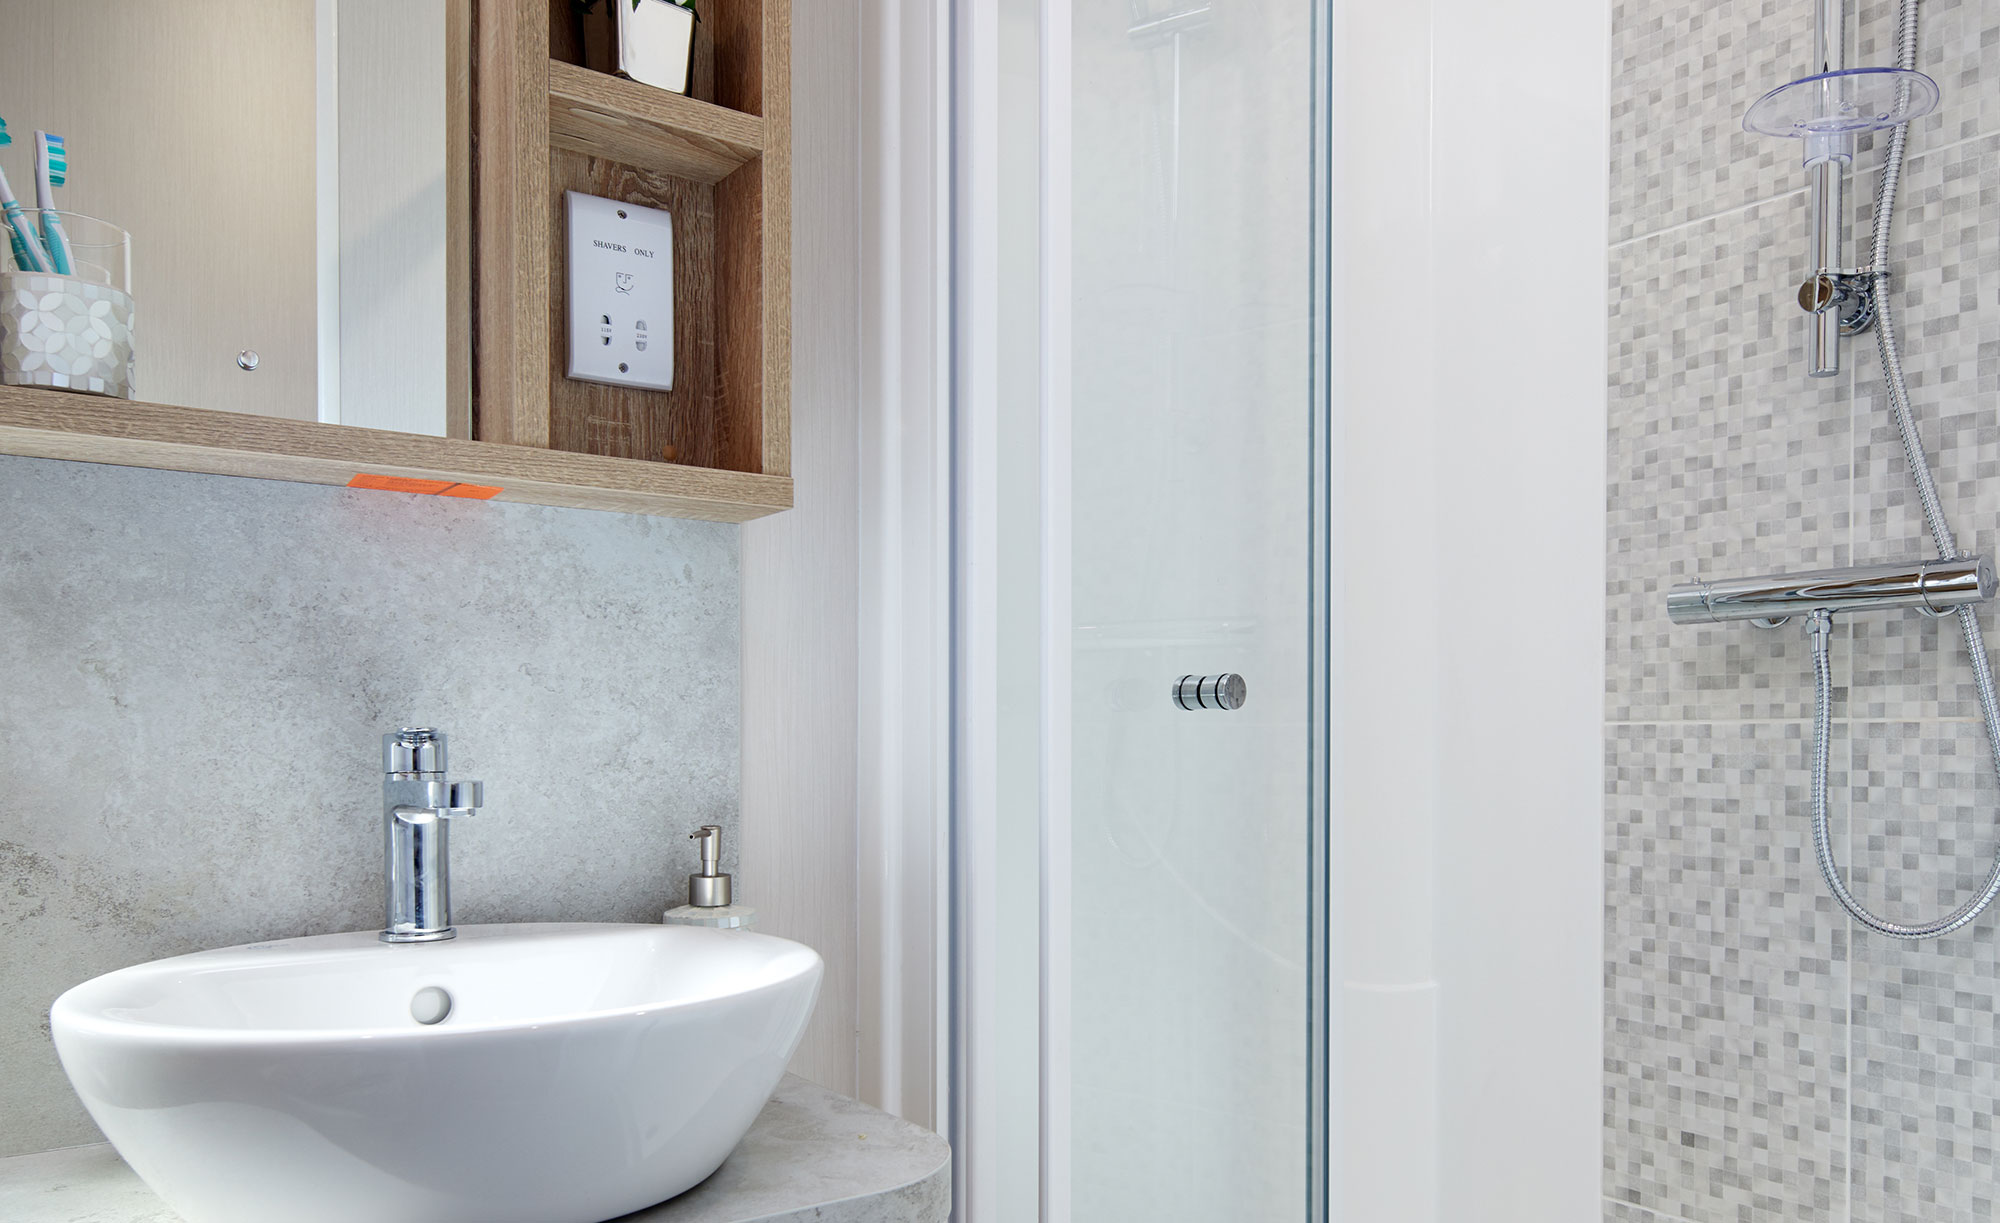 Interior shot of the bathroom in the Willerby Vogue Classique